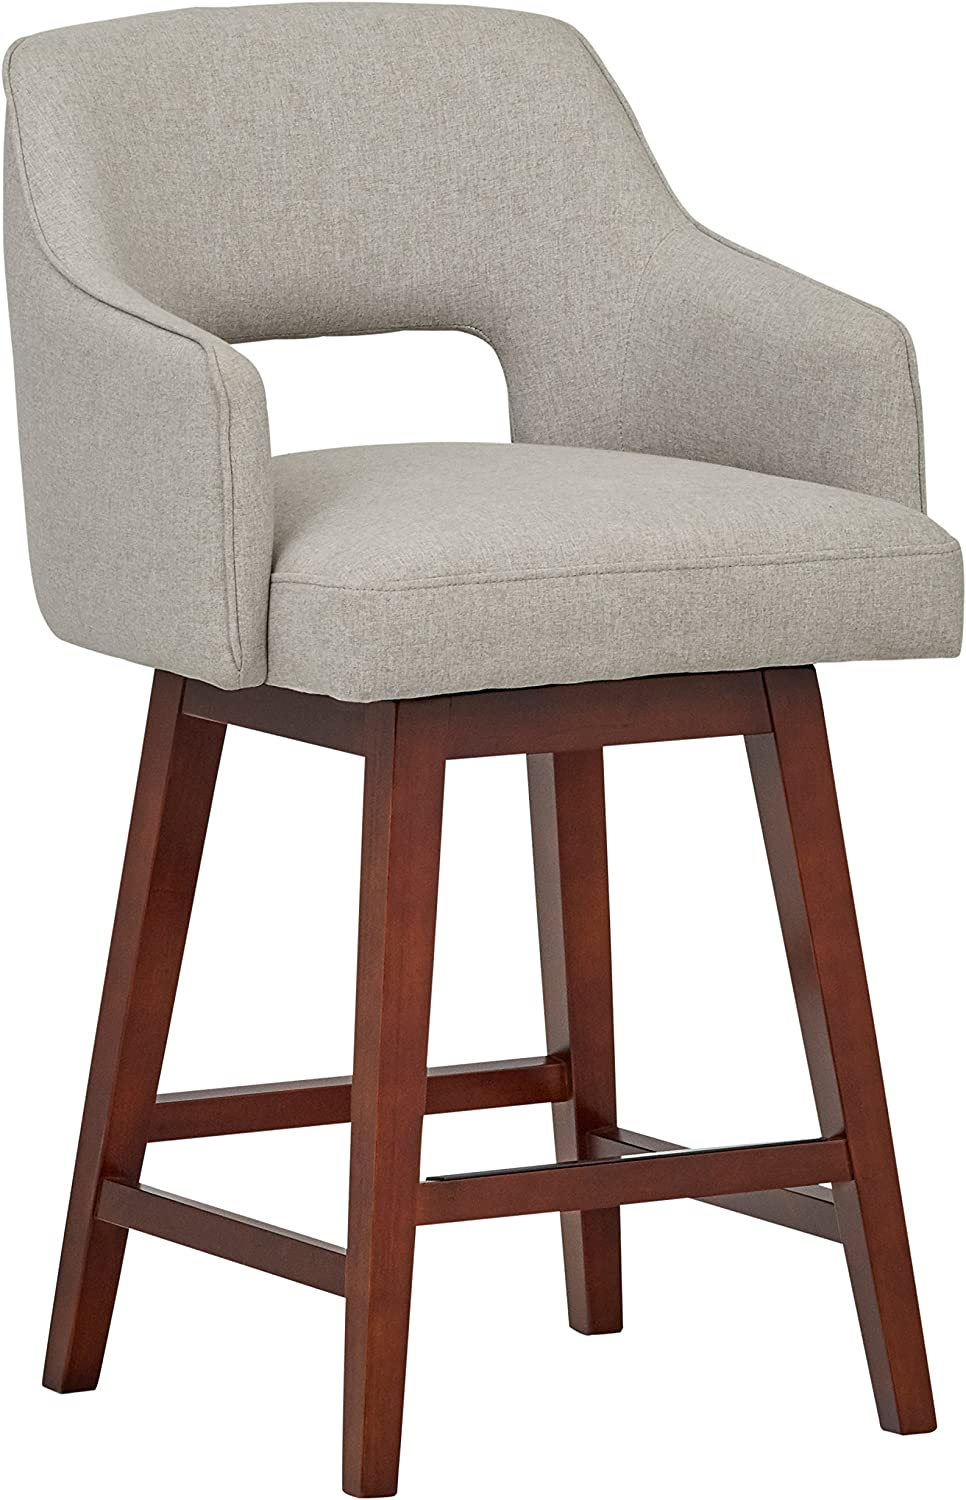 Rivet Malida Mid-Century Modern Open Back Swivel Kitchen Counter Stool – 26 Seat Height, Felt Grey